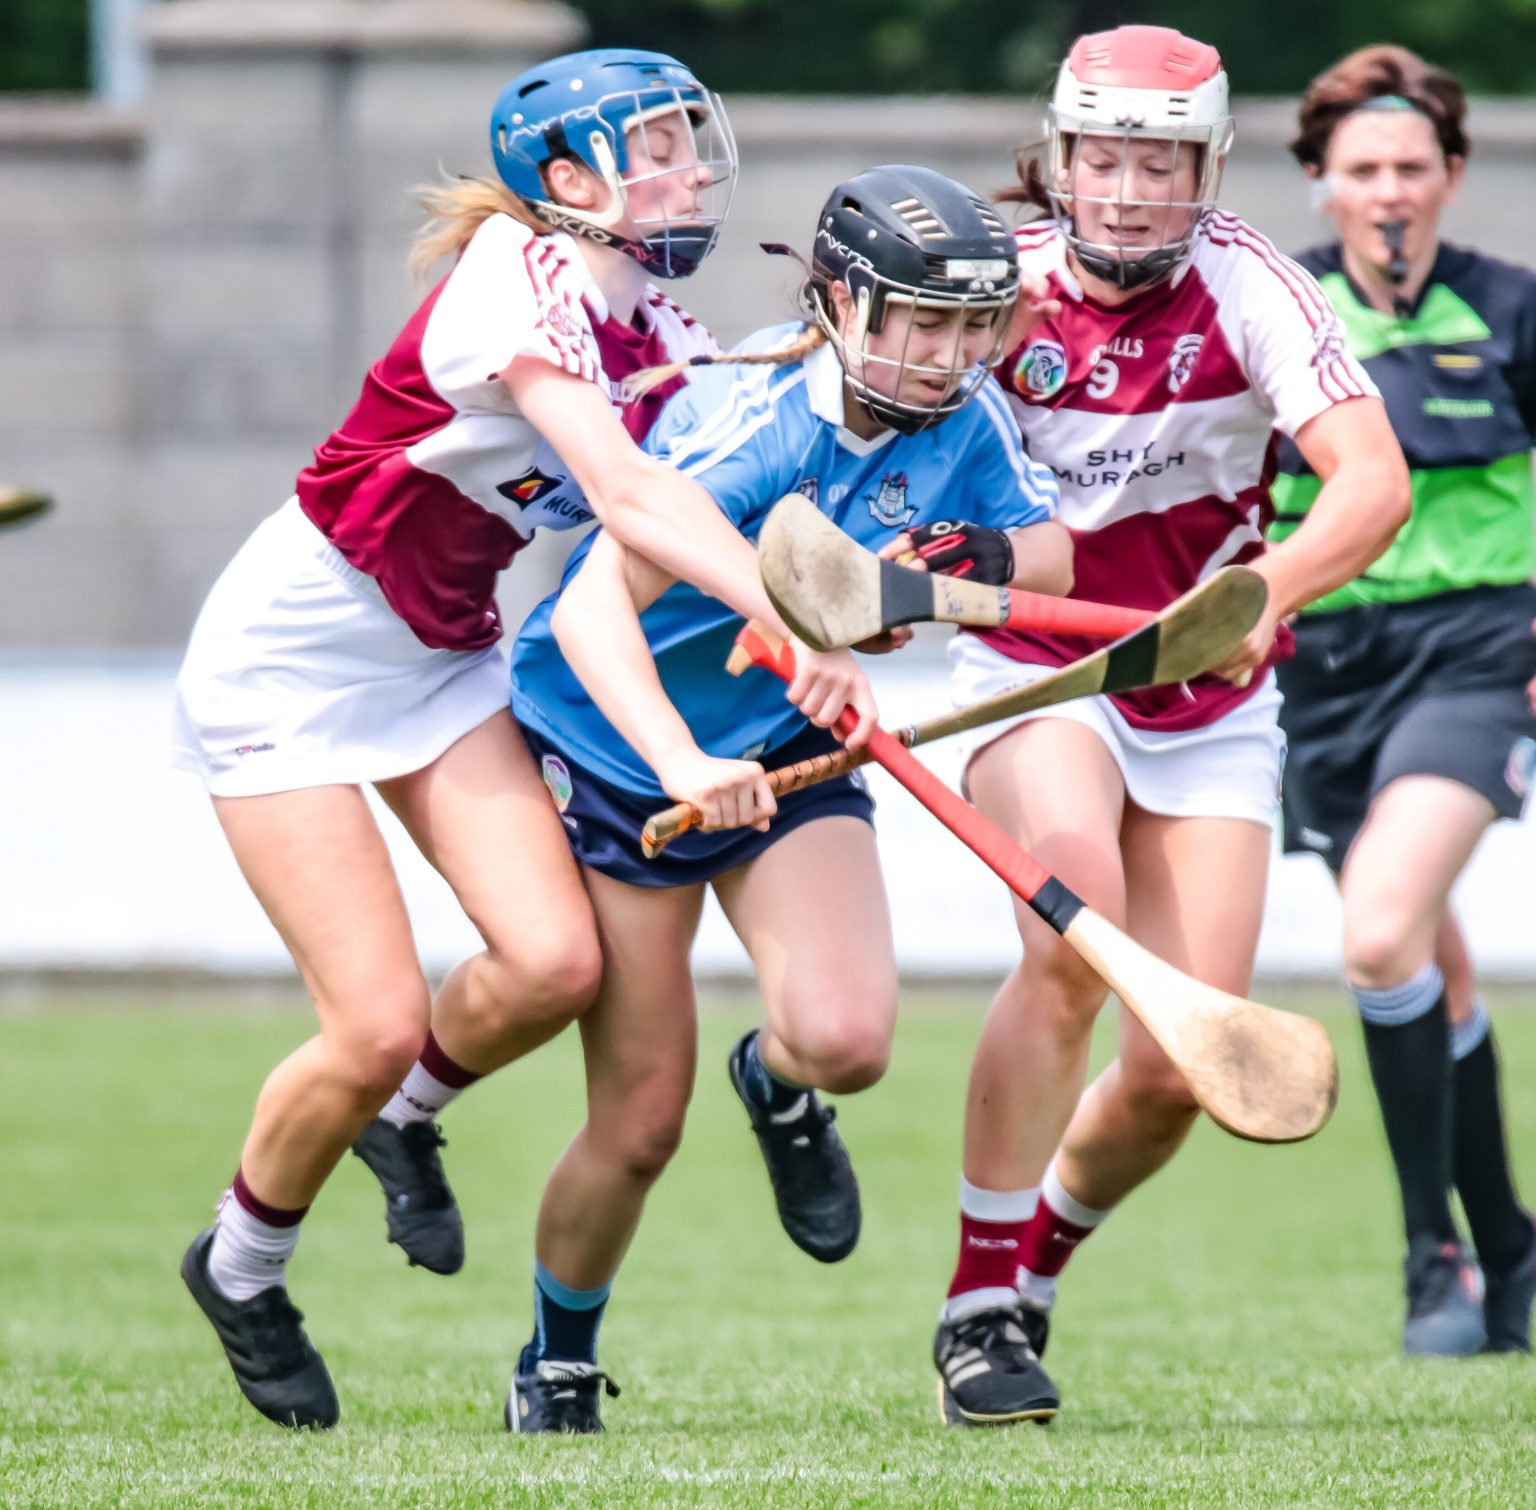 Dublin Camogie Player In Sky Blue Jersey tried to break free from two Westmeath players in maroon jersey with white sleeves in the championship final which seen Westmeath win the Leinster title